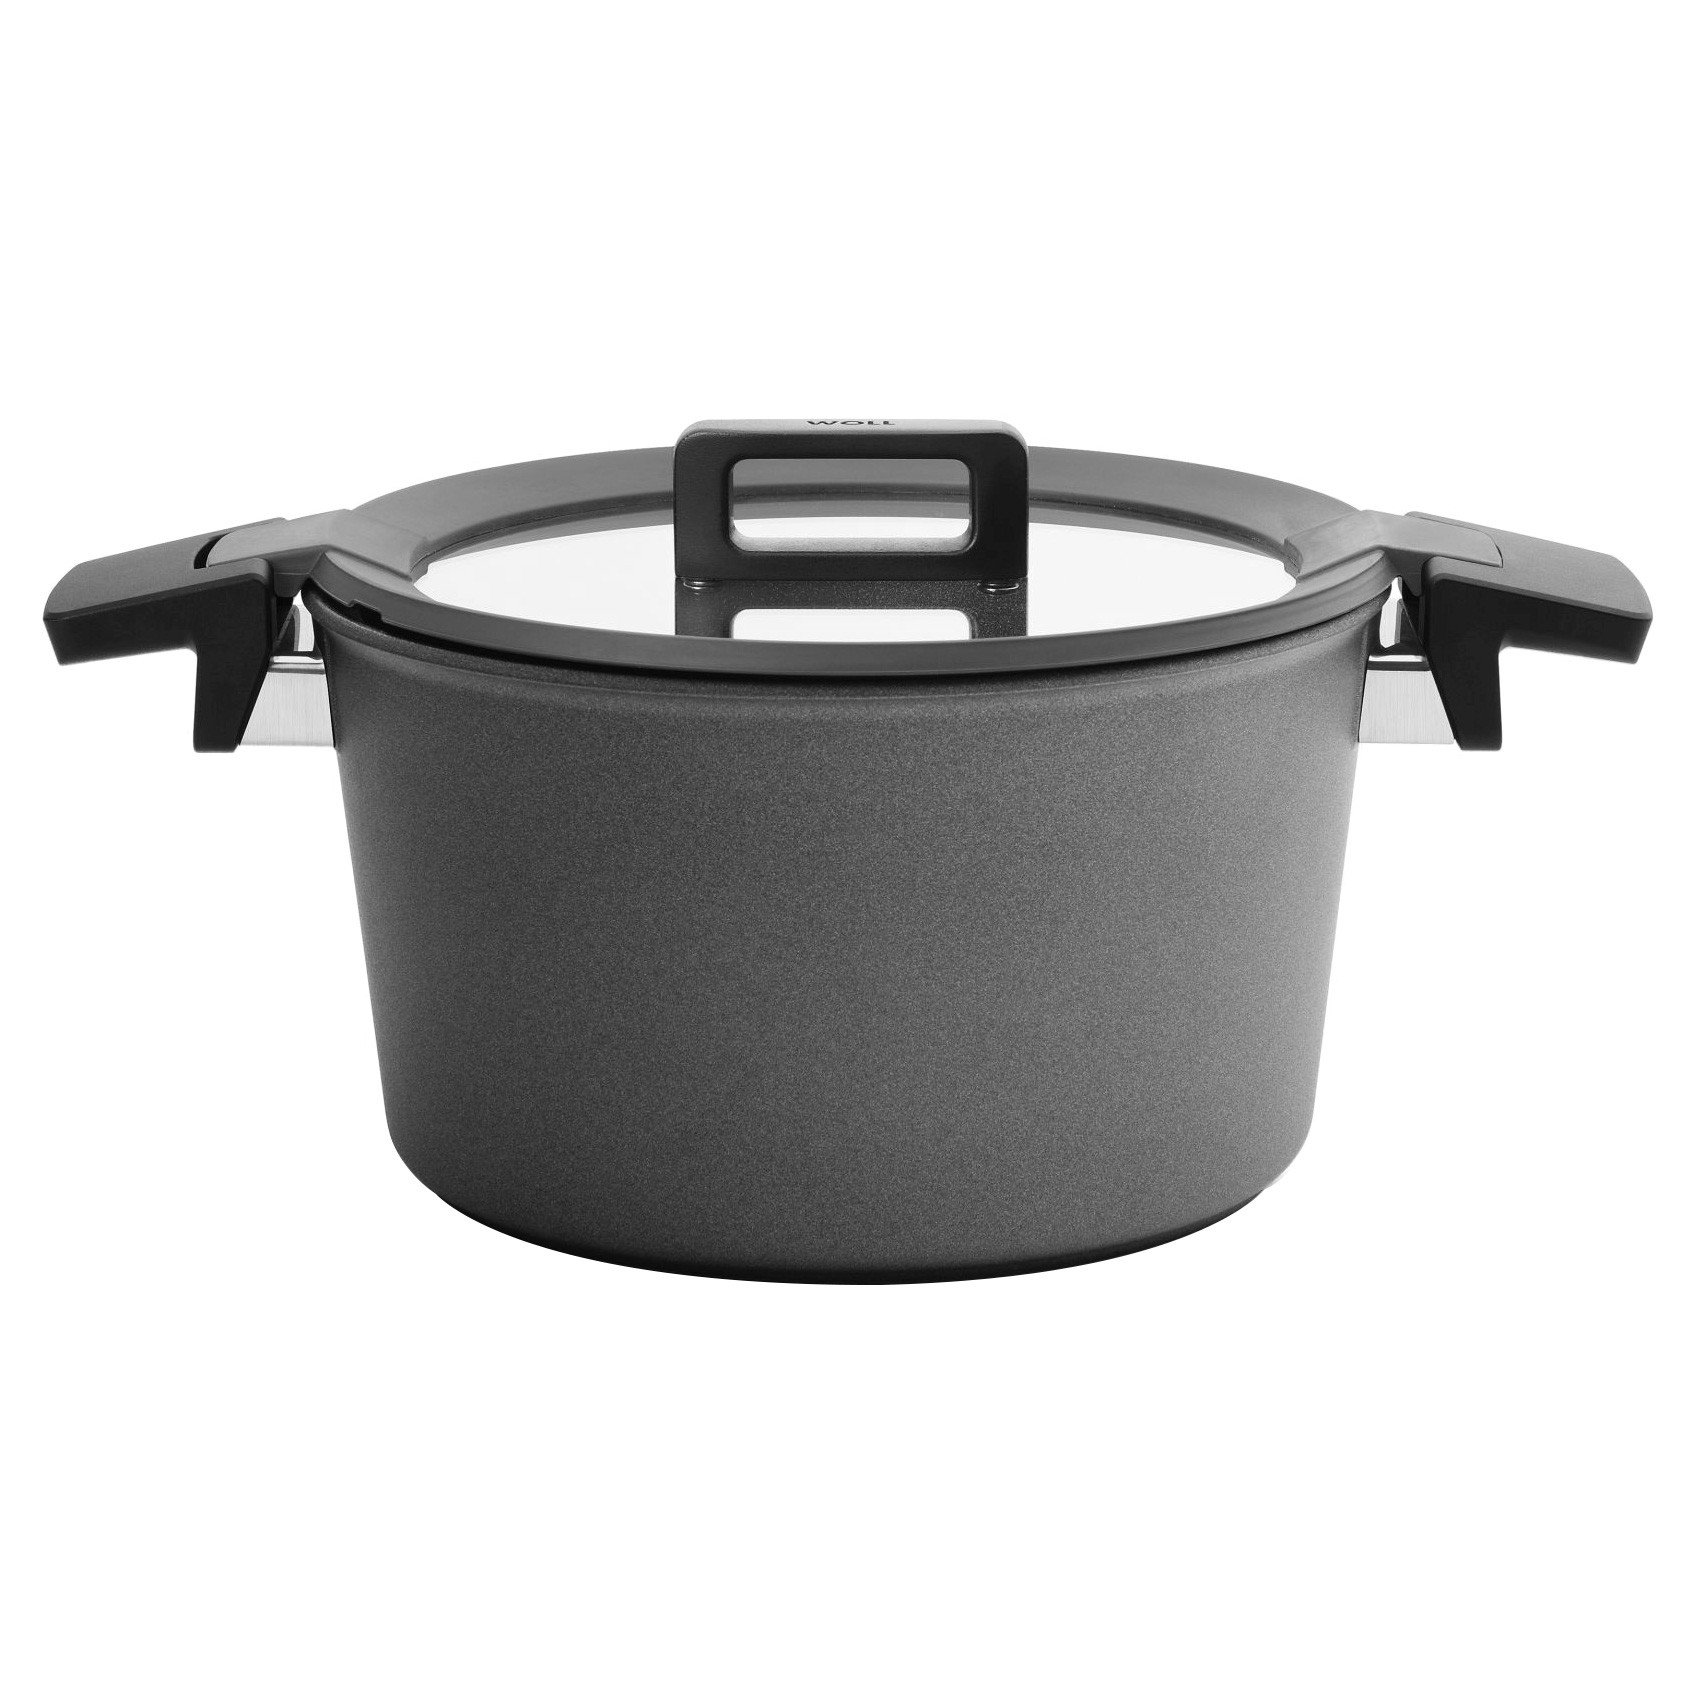 Woll Diamond Concept Plus Induction Casserole, 24cm / 5L